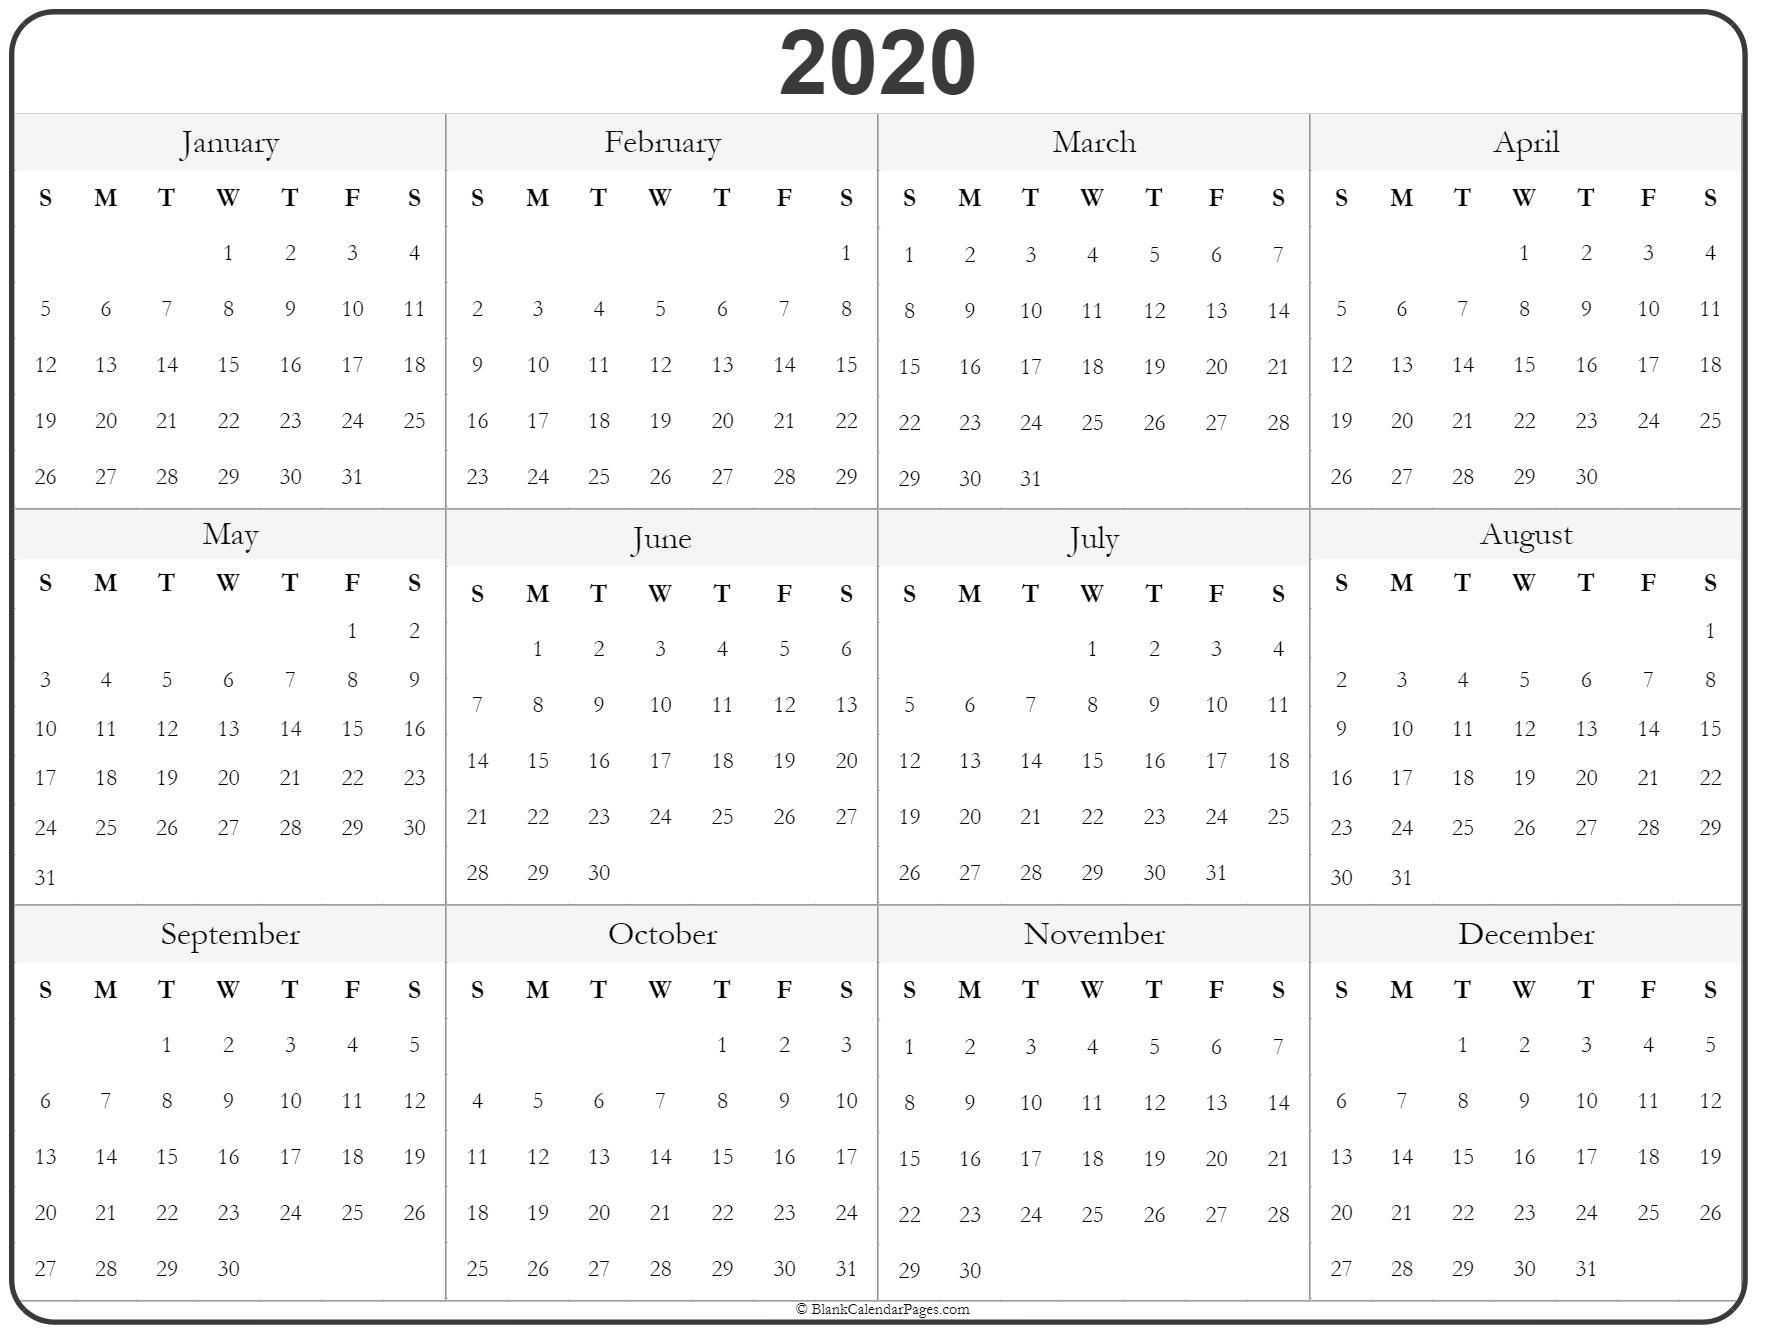 Rest Of Year Calendar In 2020 | Printable Yearly Calendar